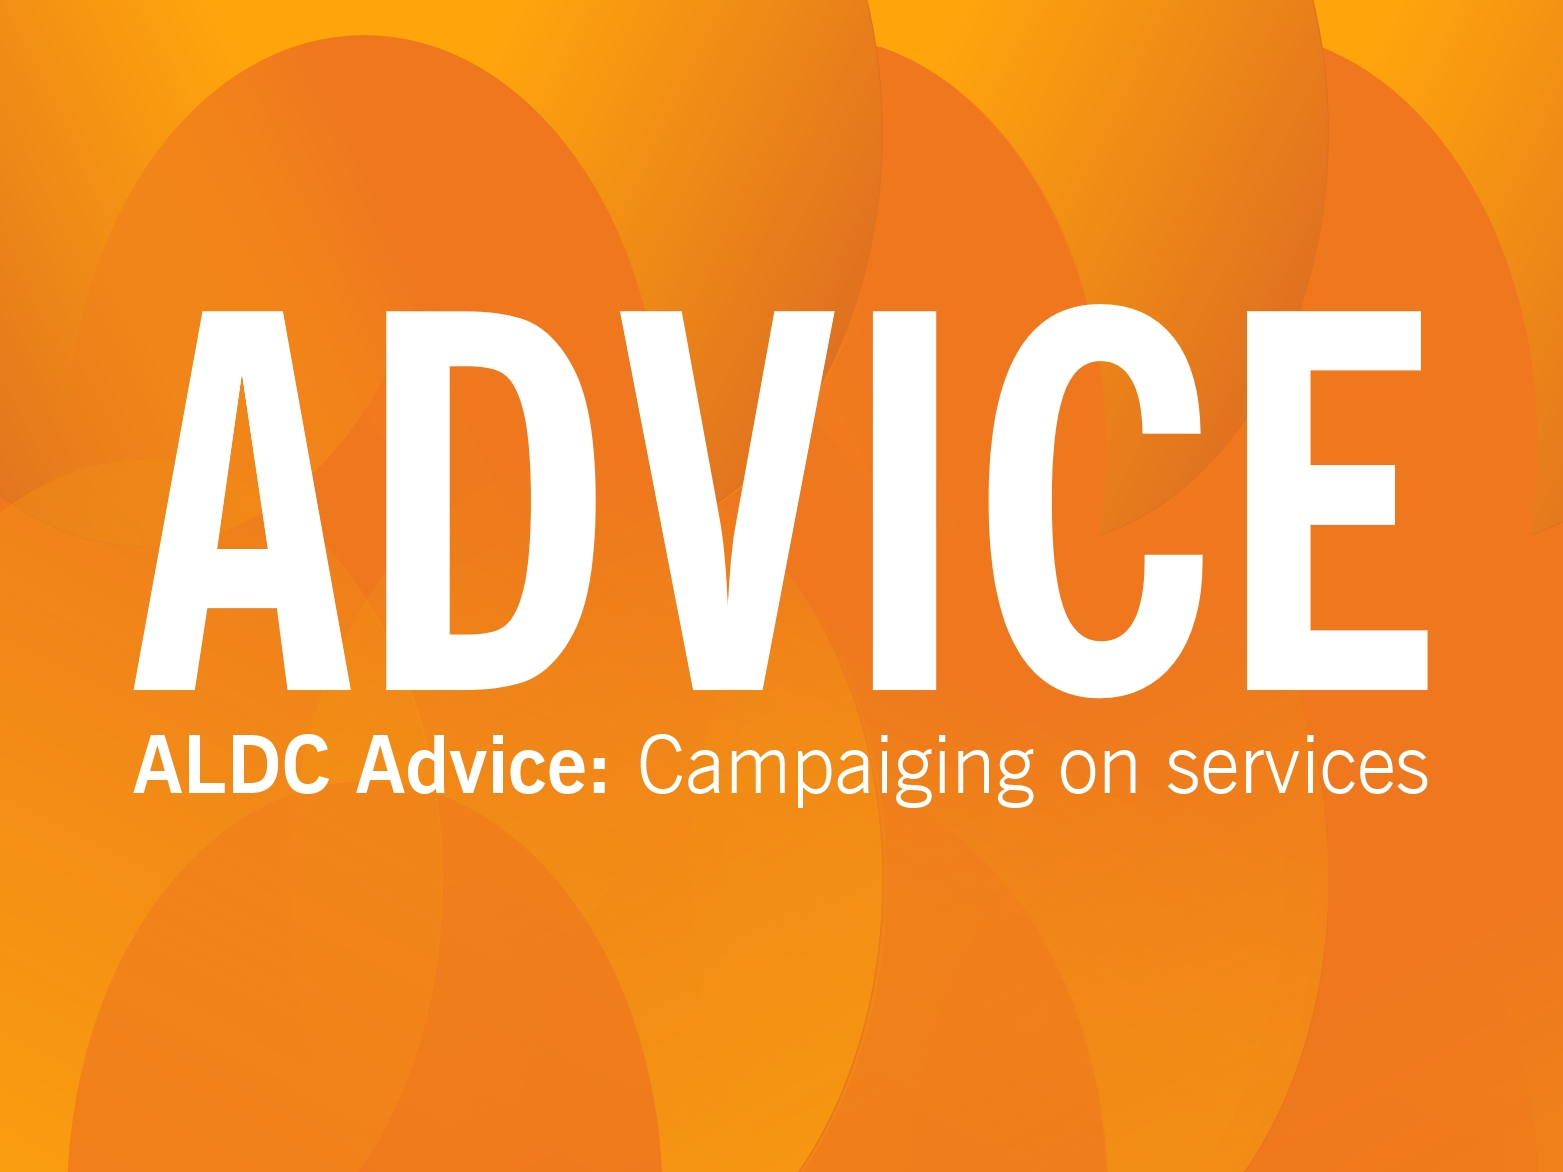 Saving Services – Tips for campaigning against the cuts